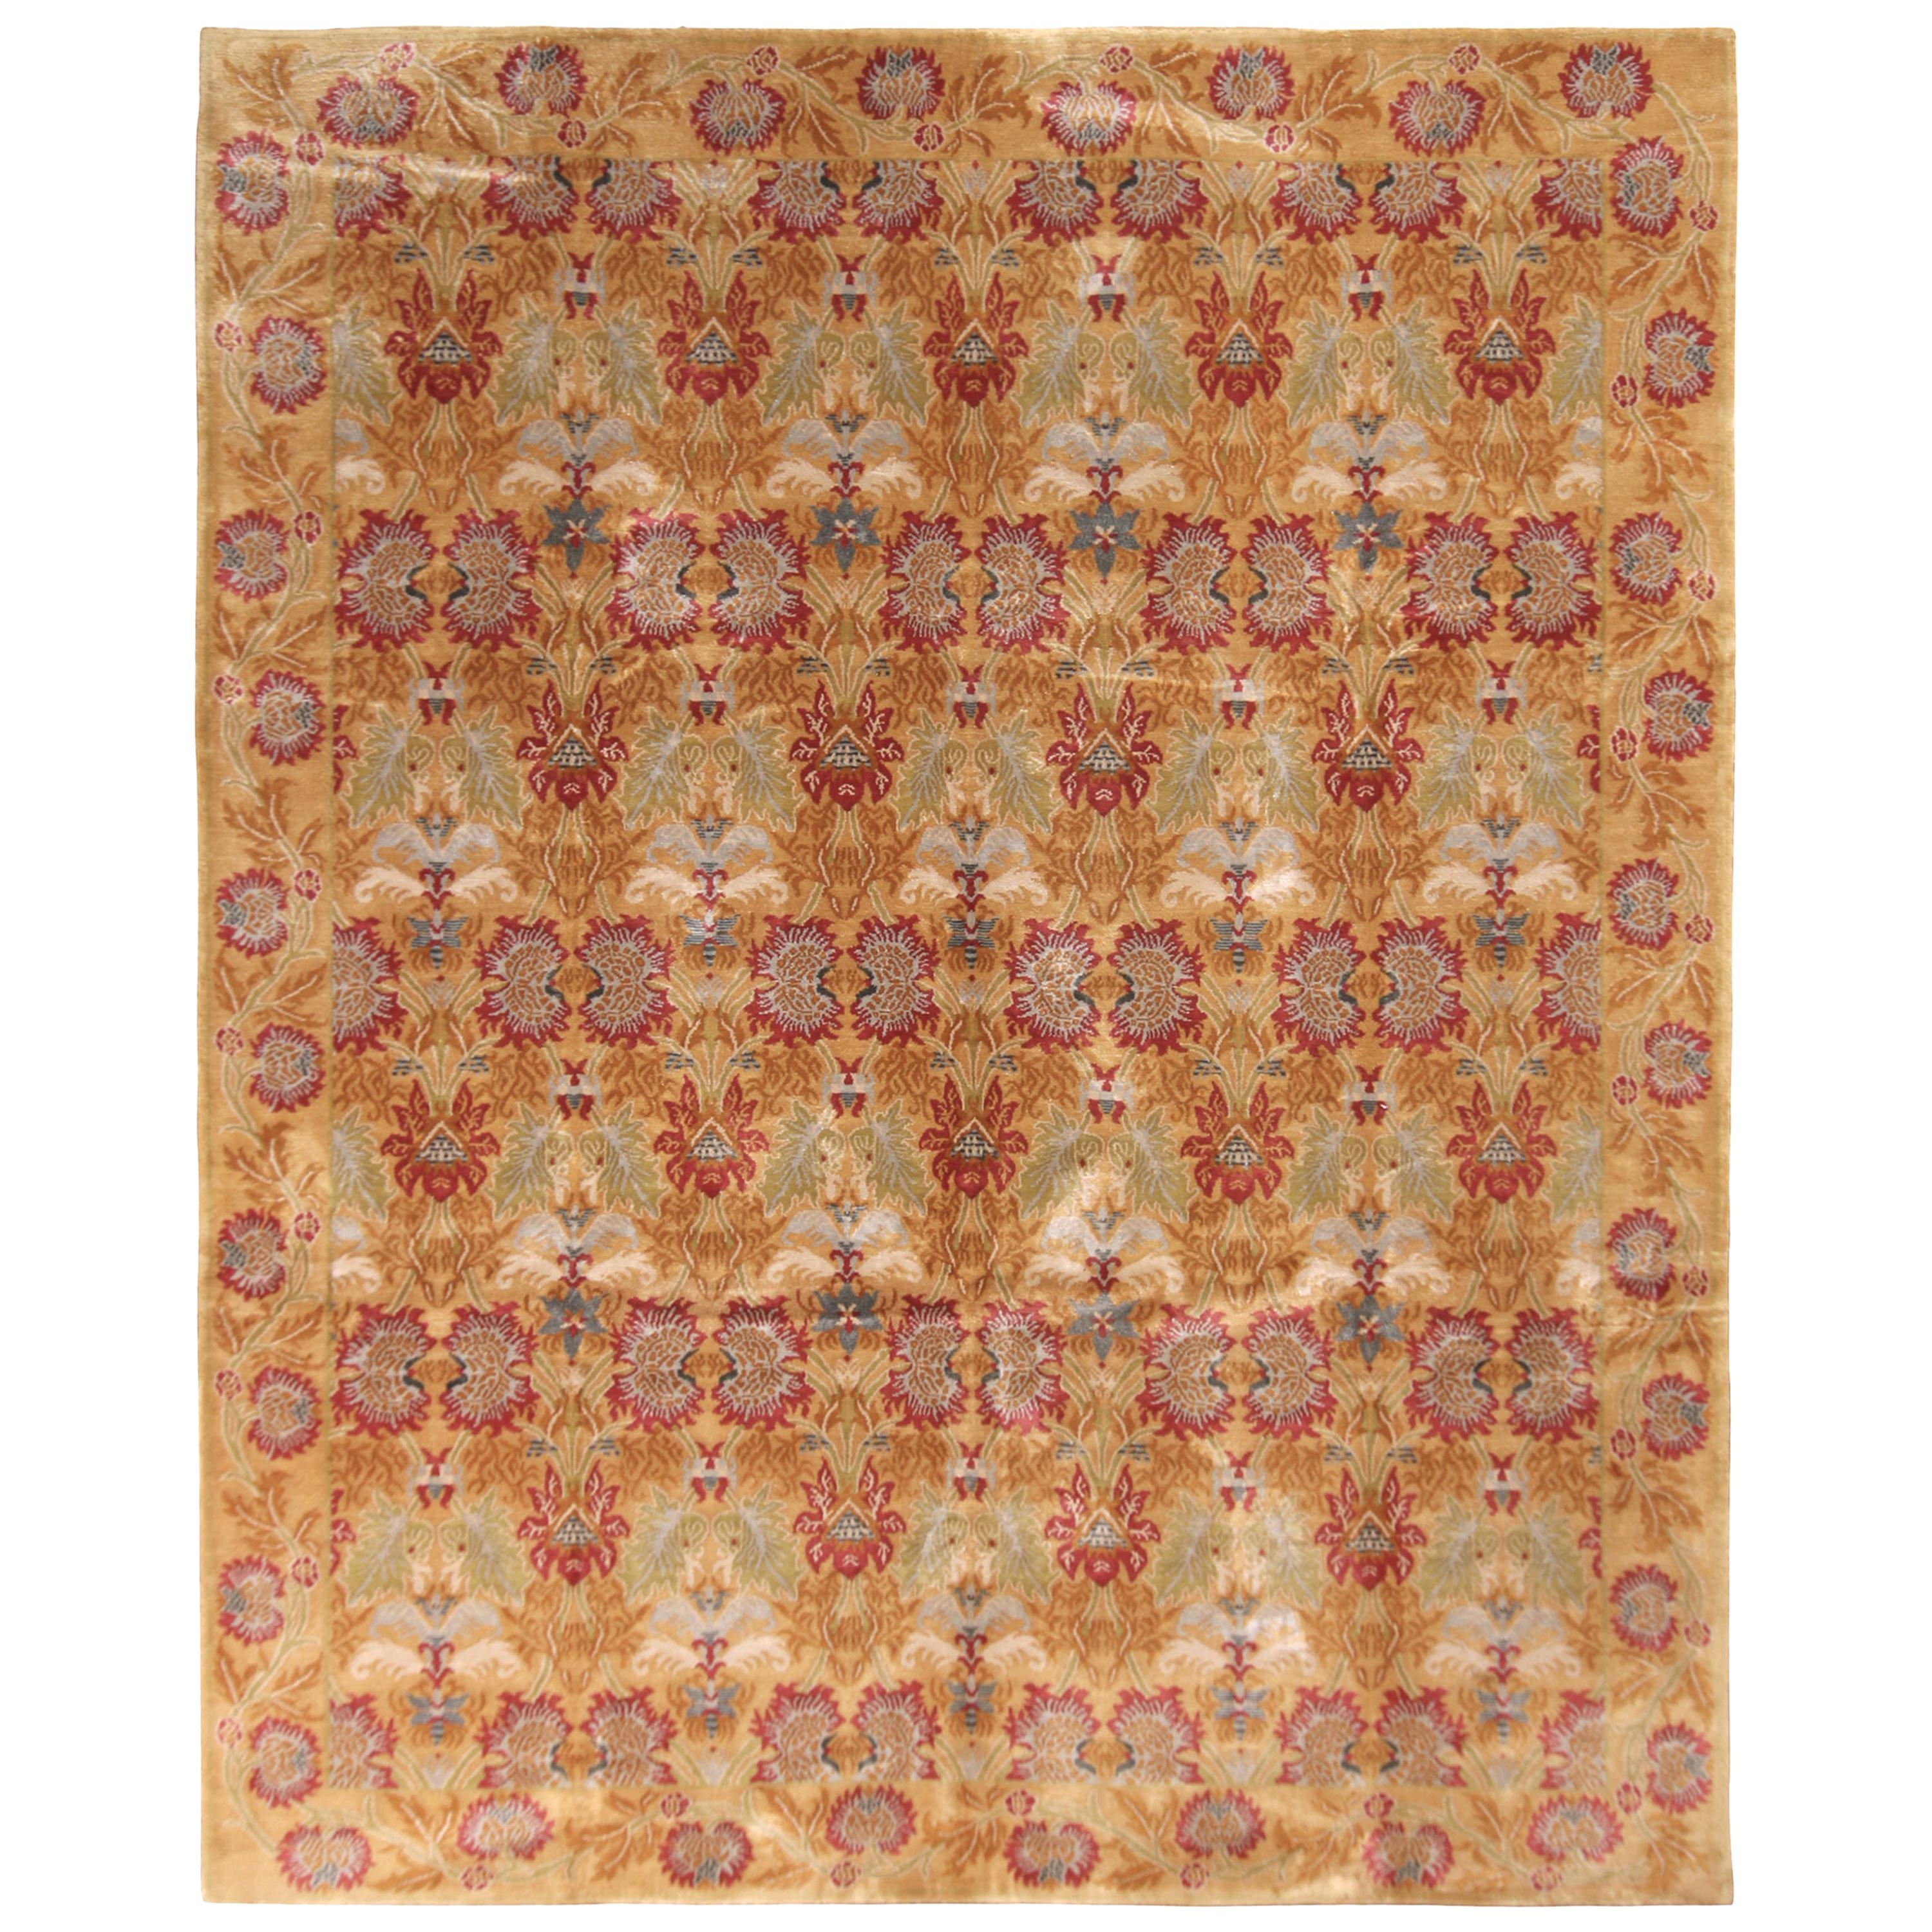 Rug & Kilim's European-Style Floral Rug Gold Red Wool and Silk Rug